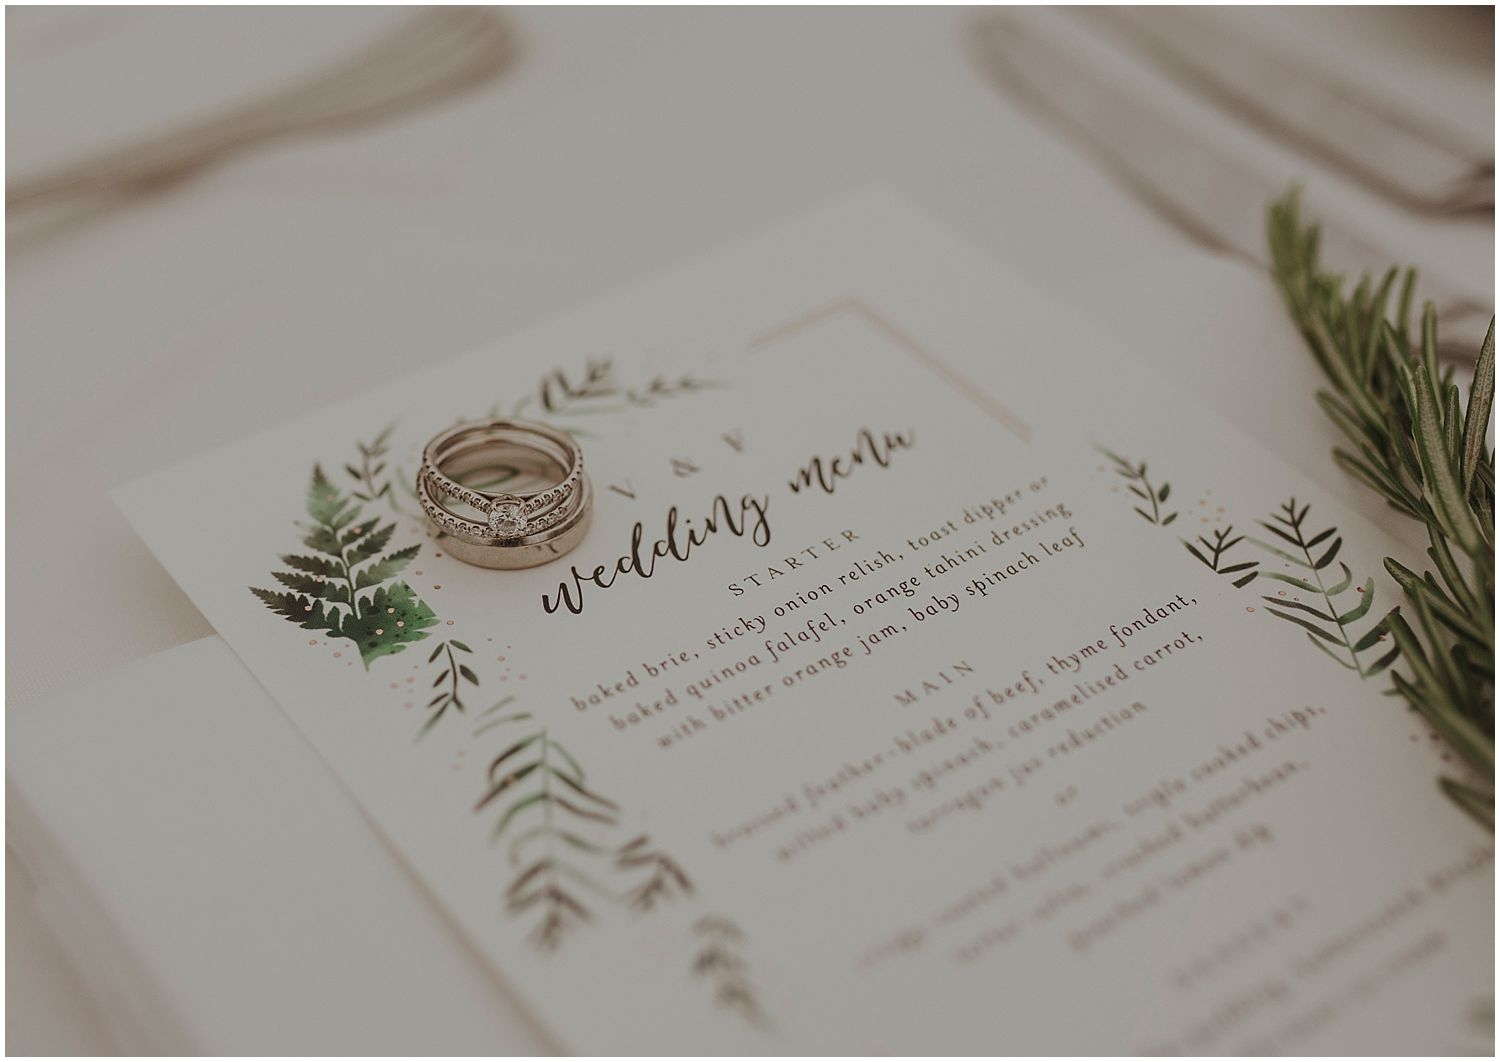 Vikki: We wanted to go with a simple, botanical theme and found Minted which is a really cool online stationary provider that supports independent local designers and artists all around the US. They have lots of unique, pretty designs and the whole process was really easy and everything was delivered right to our door!